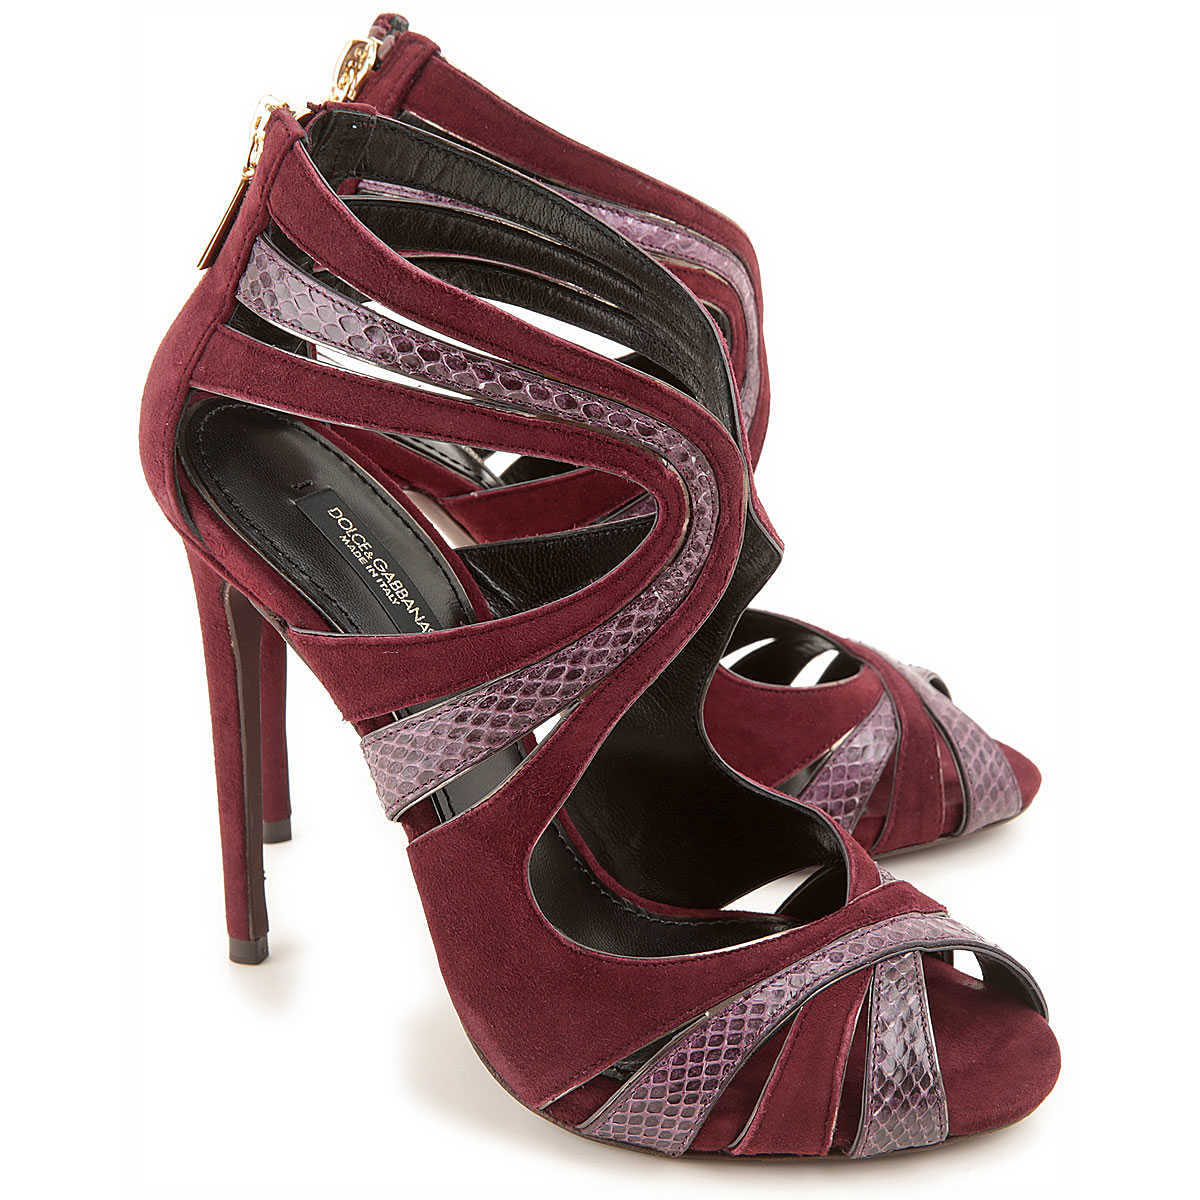 Dolce & Gabbana Sandals for Women in Outlet ribes Canada - GOOFASH - Womens SANDALS